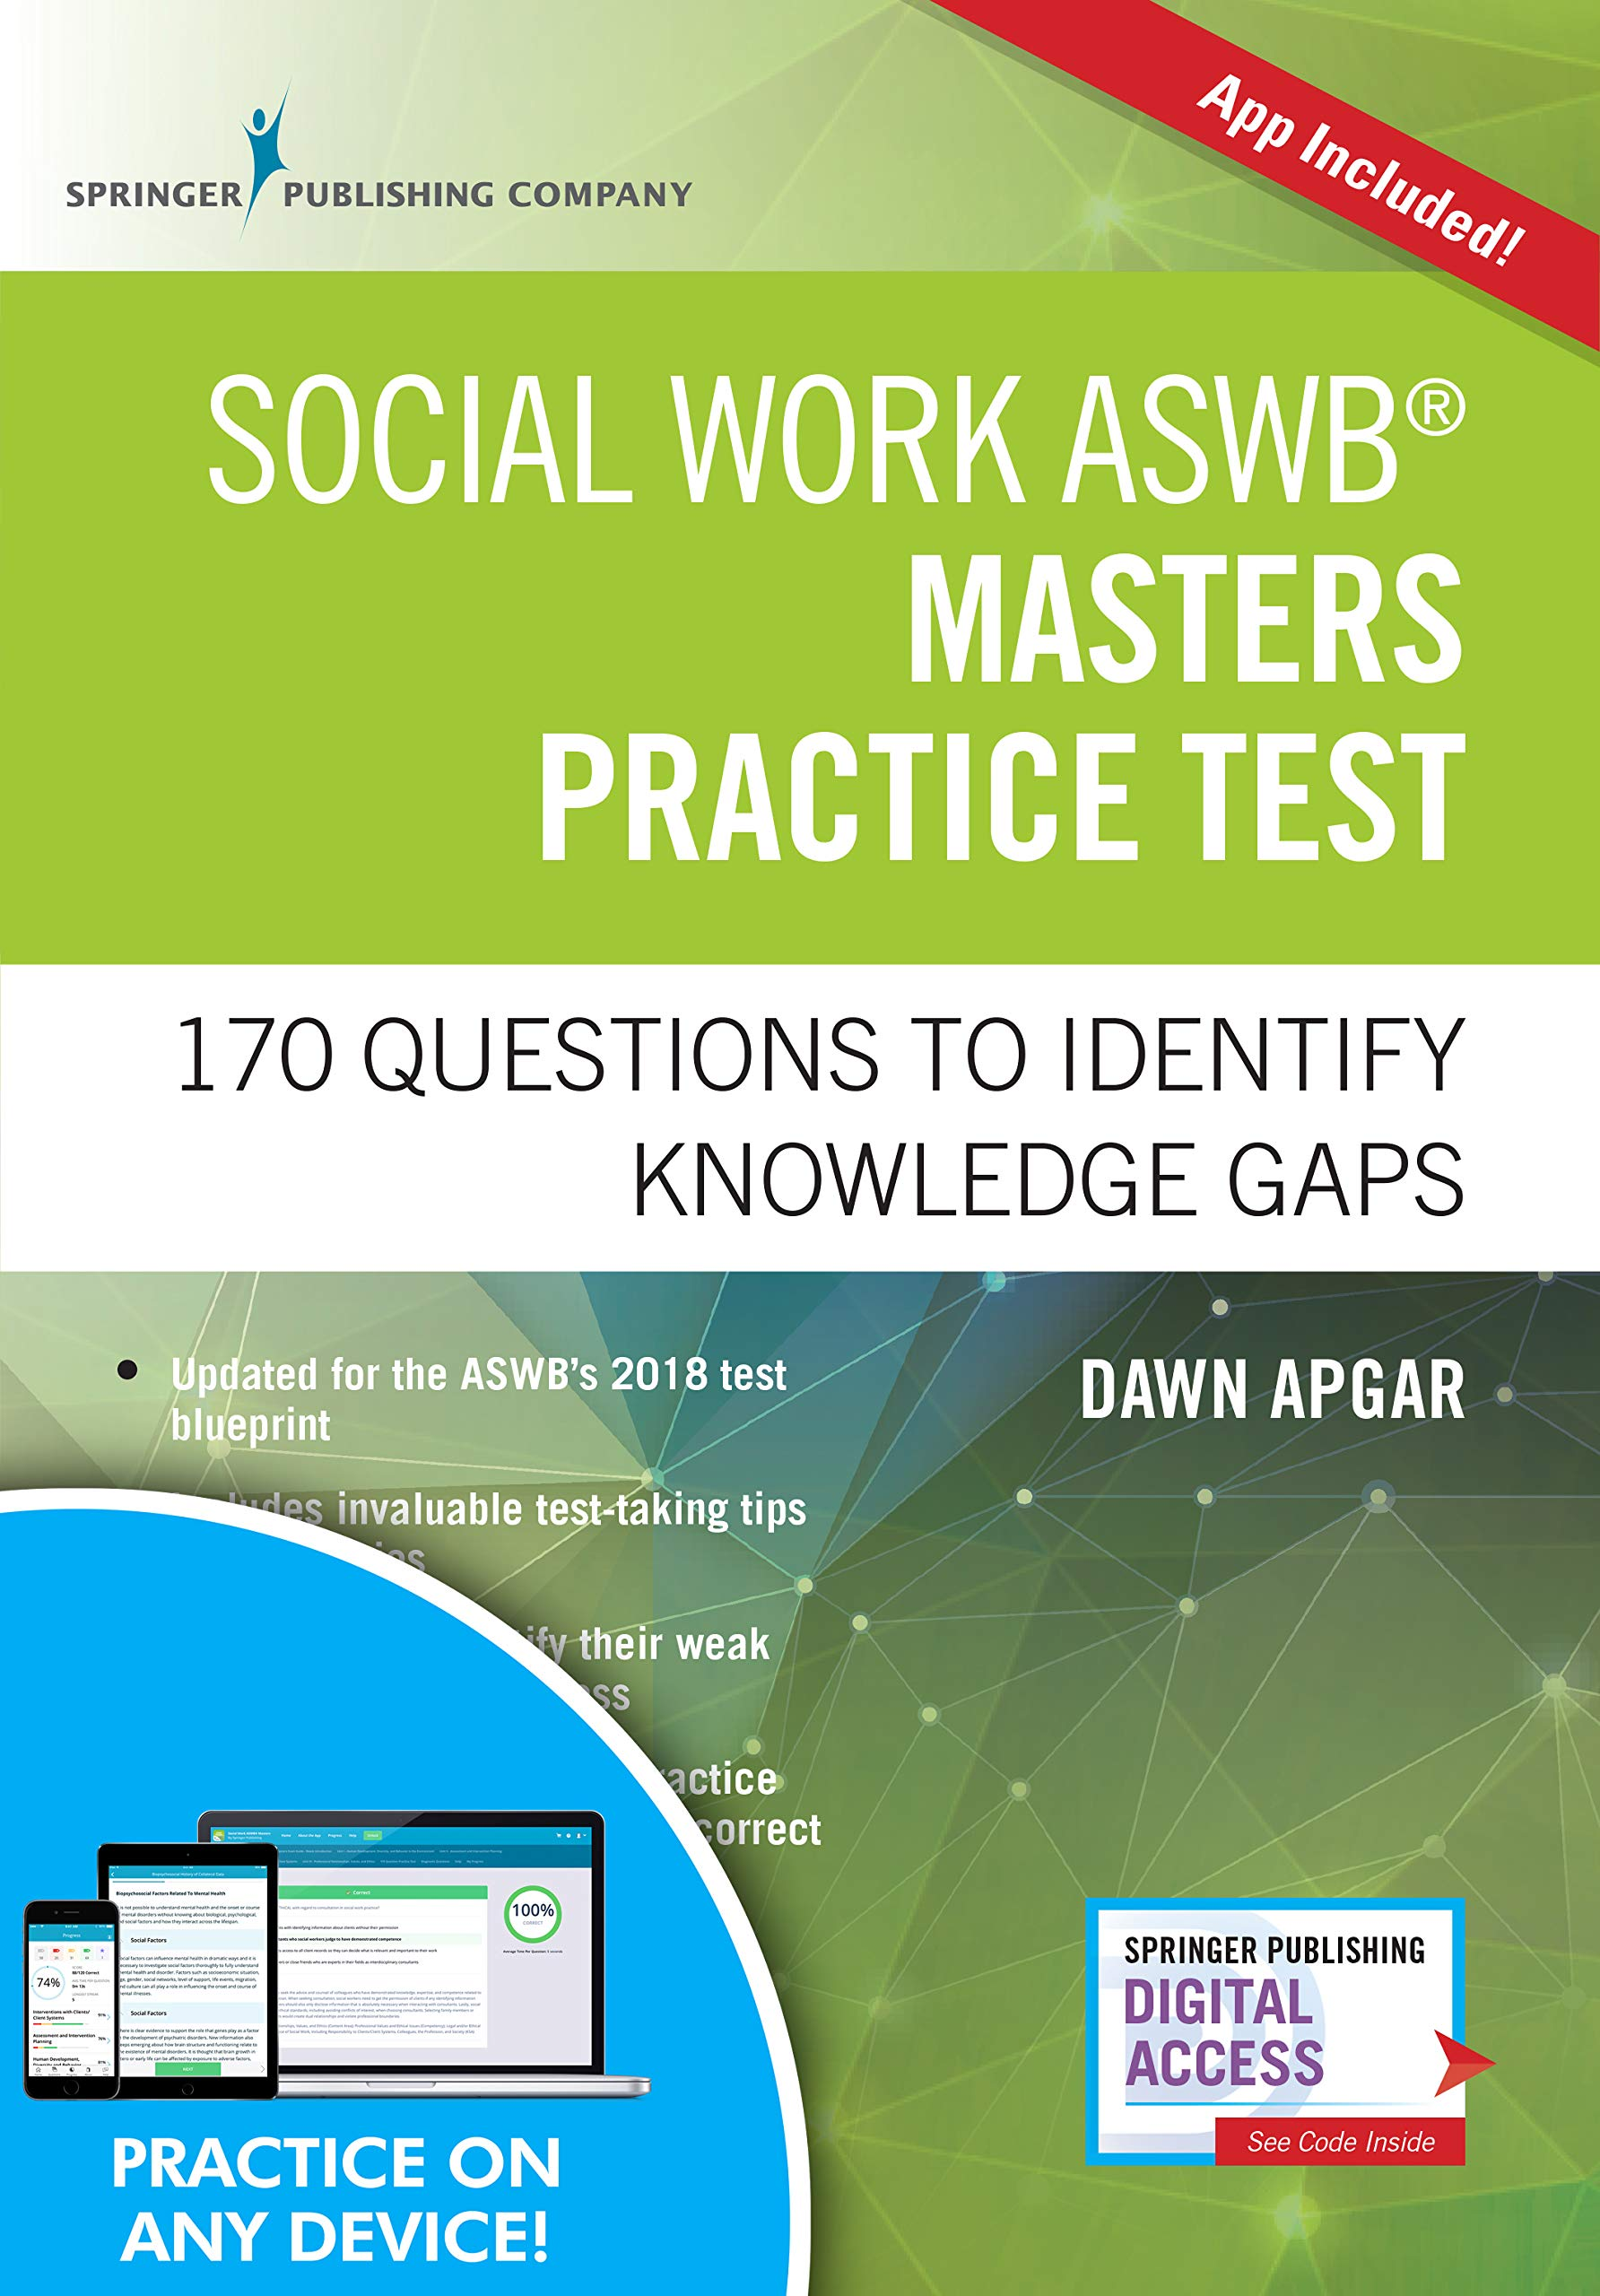 Social Work Masters Practice Second product image